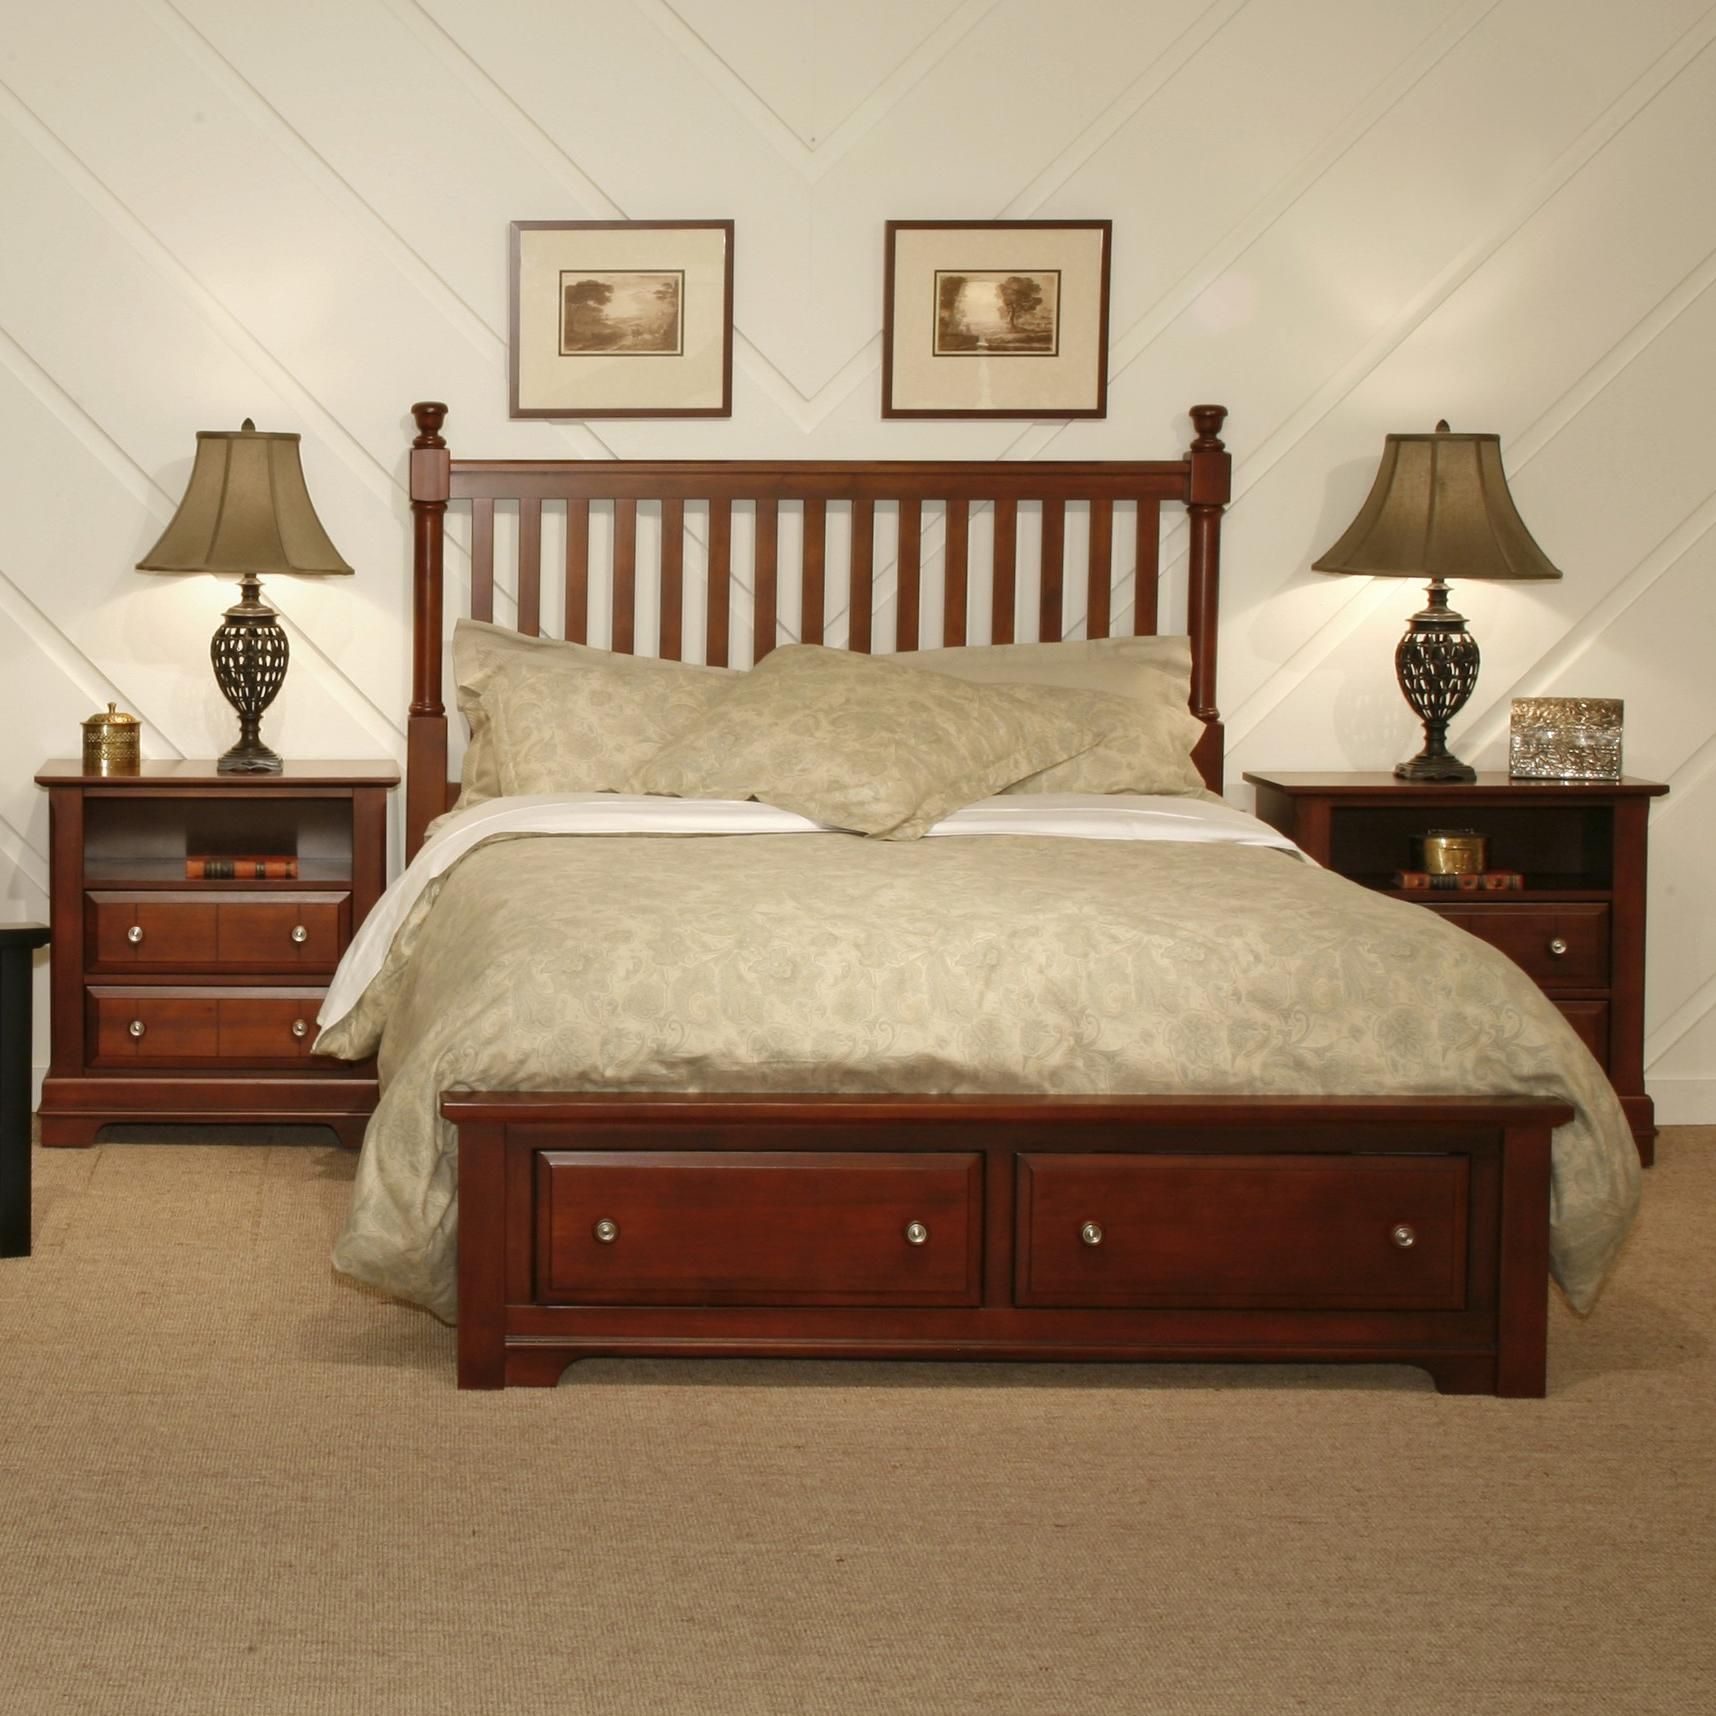 Vaughan bassett cottage queen bedroom group dunk for Bedroom furniture groups